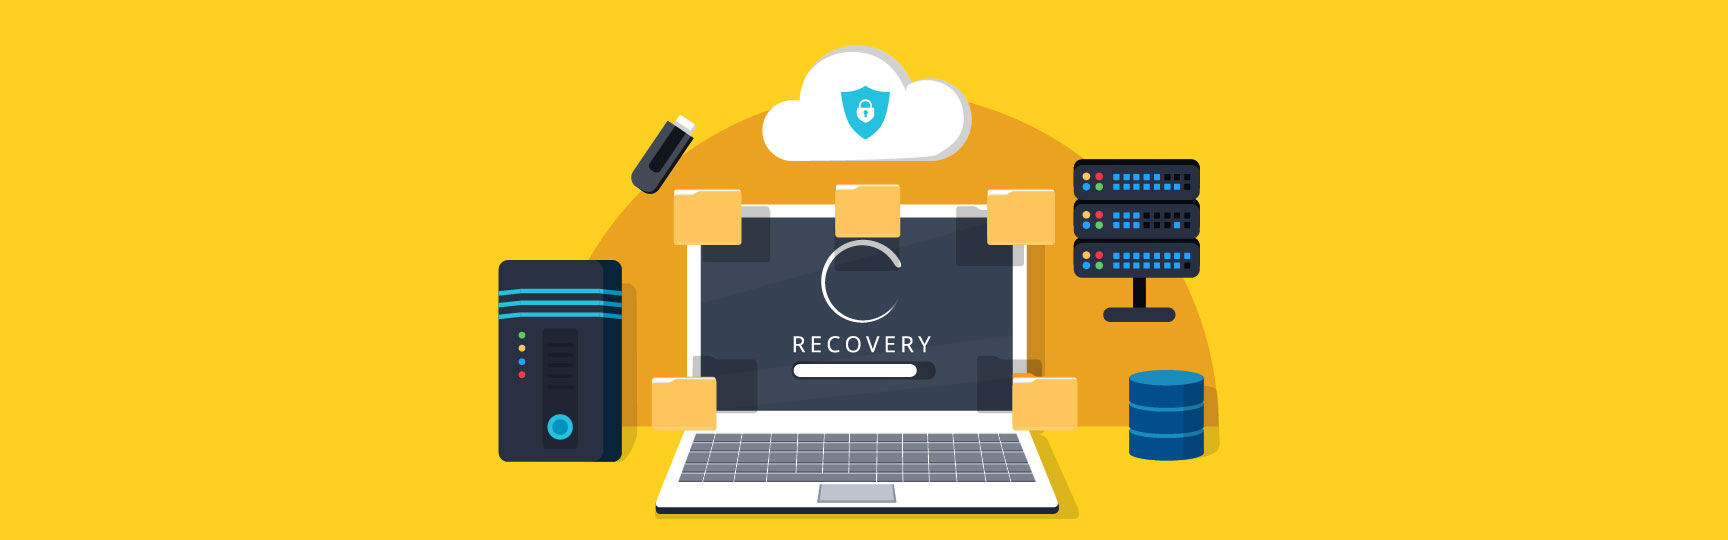 What Is A Disaster Recovery Plan Why Do I Need One